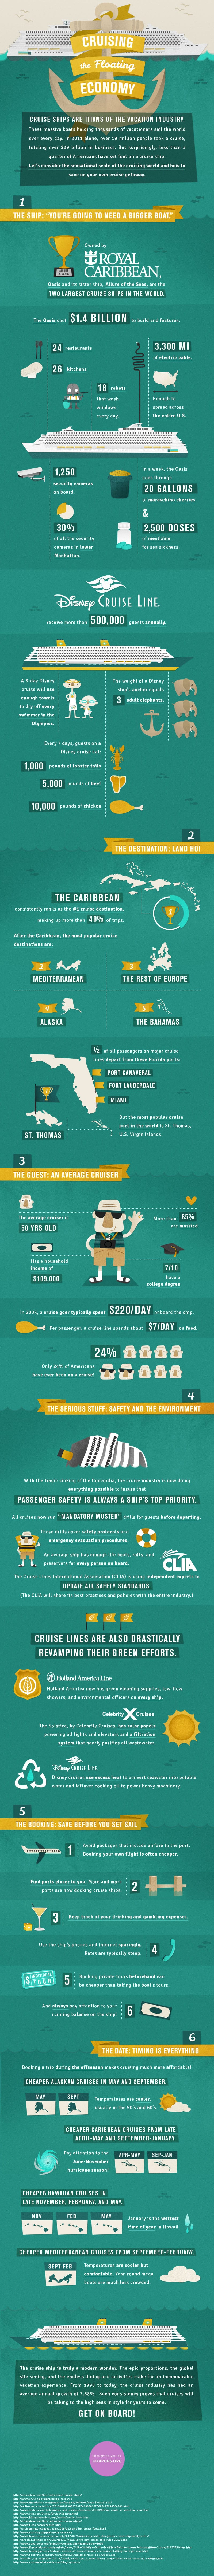 cruising infographic